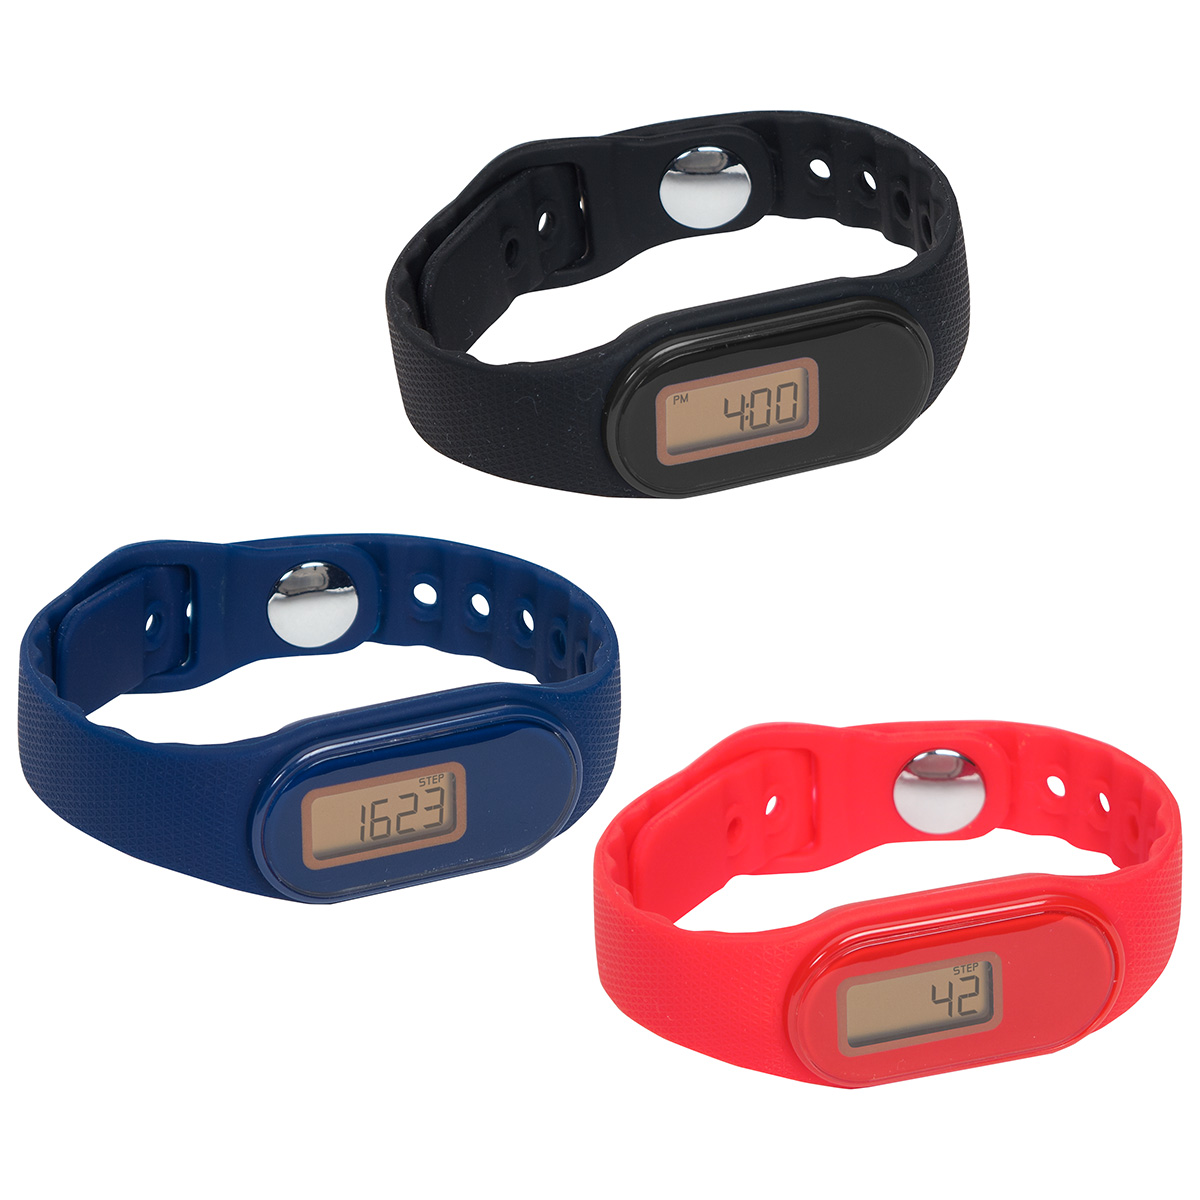 Tap 'N Read Waterproof Fitness Tracker + Pedometer Watch, WHF-TN16, 1 Colour Imprint